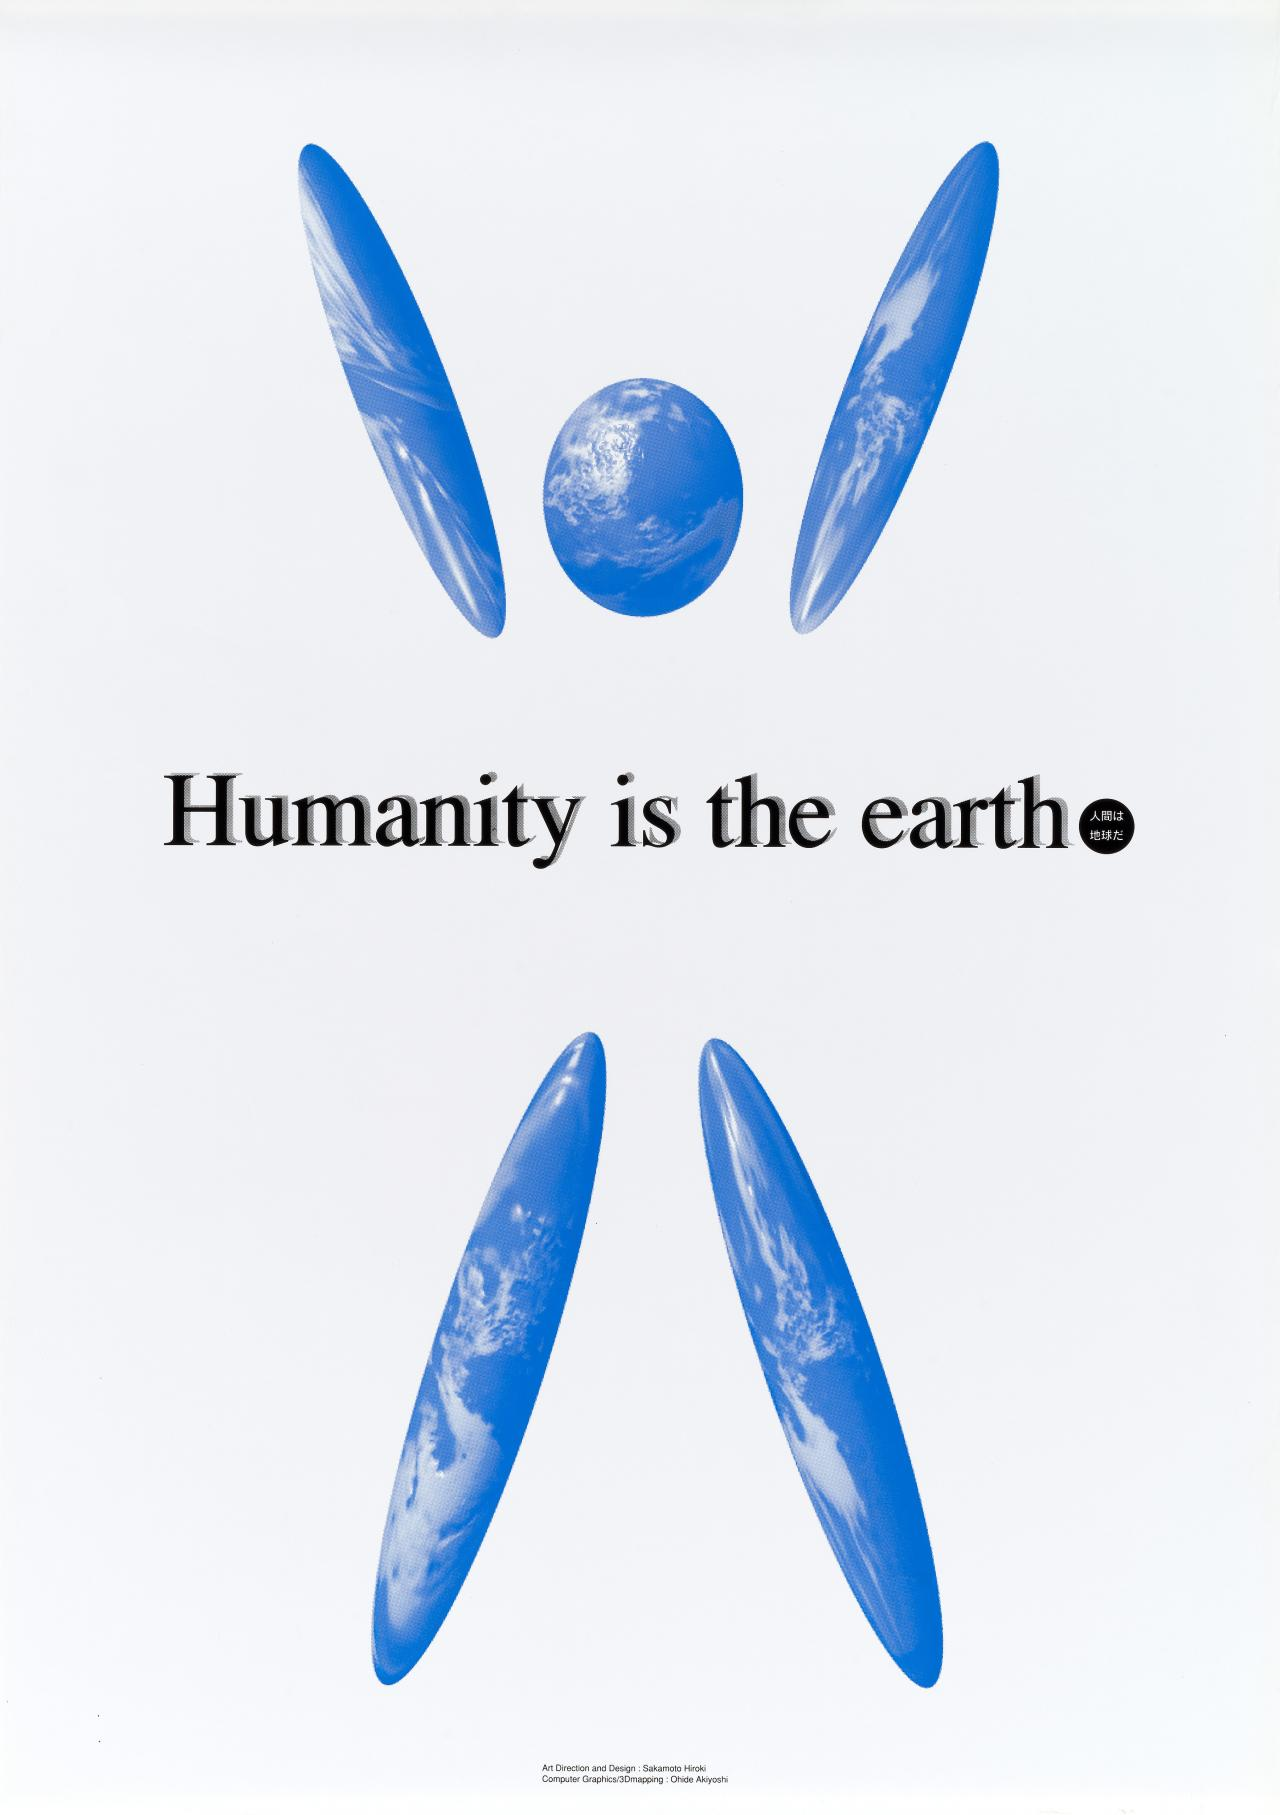 Humanity is the earth